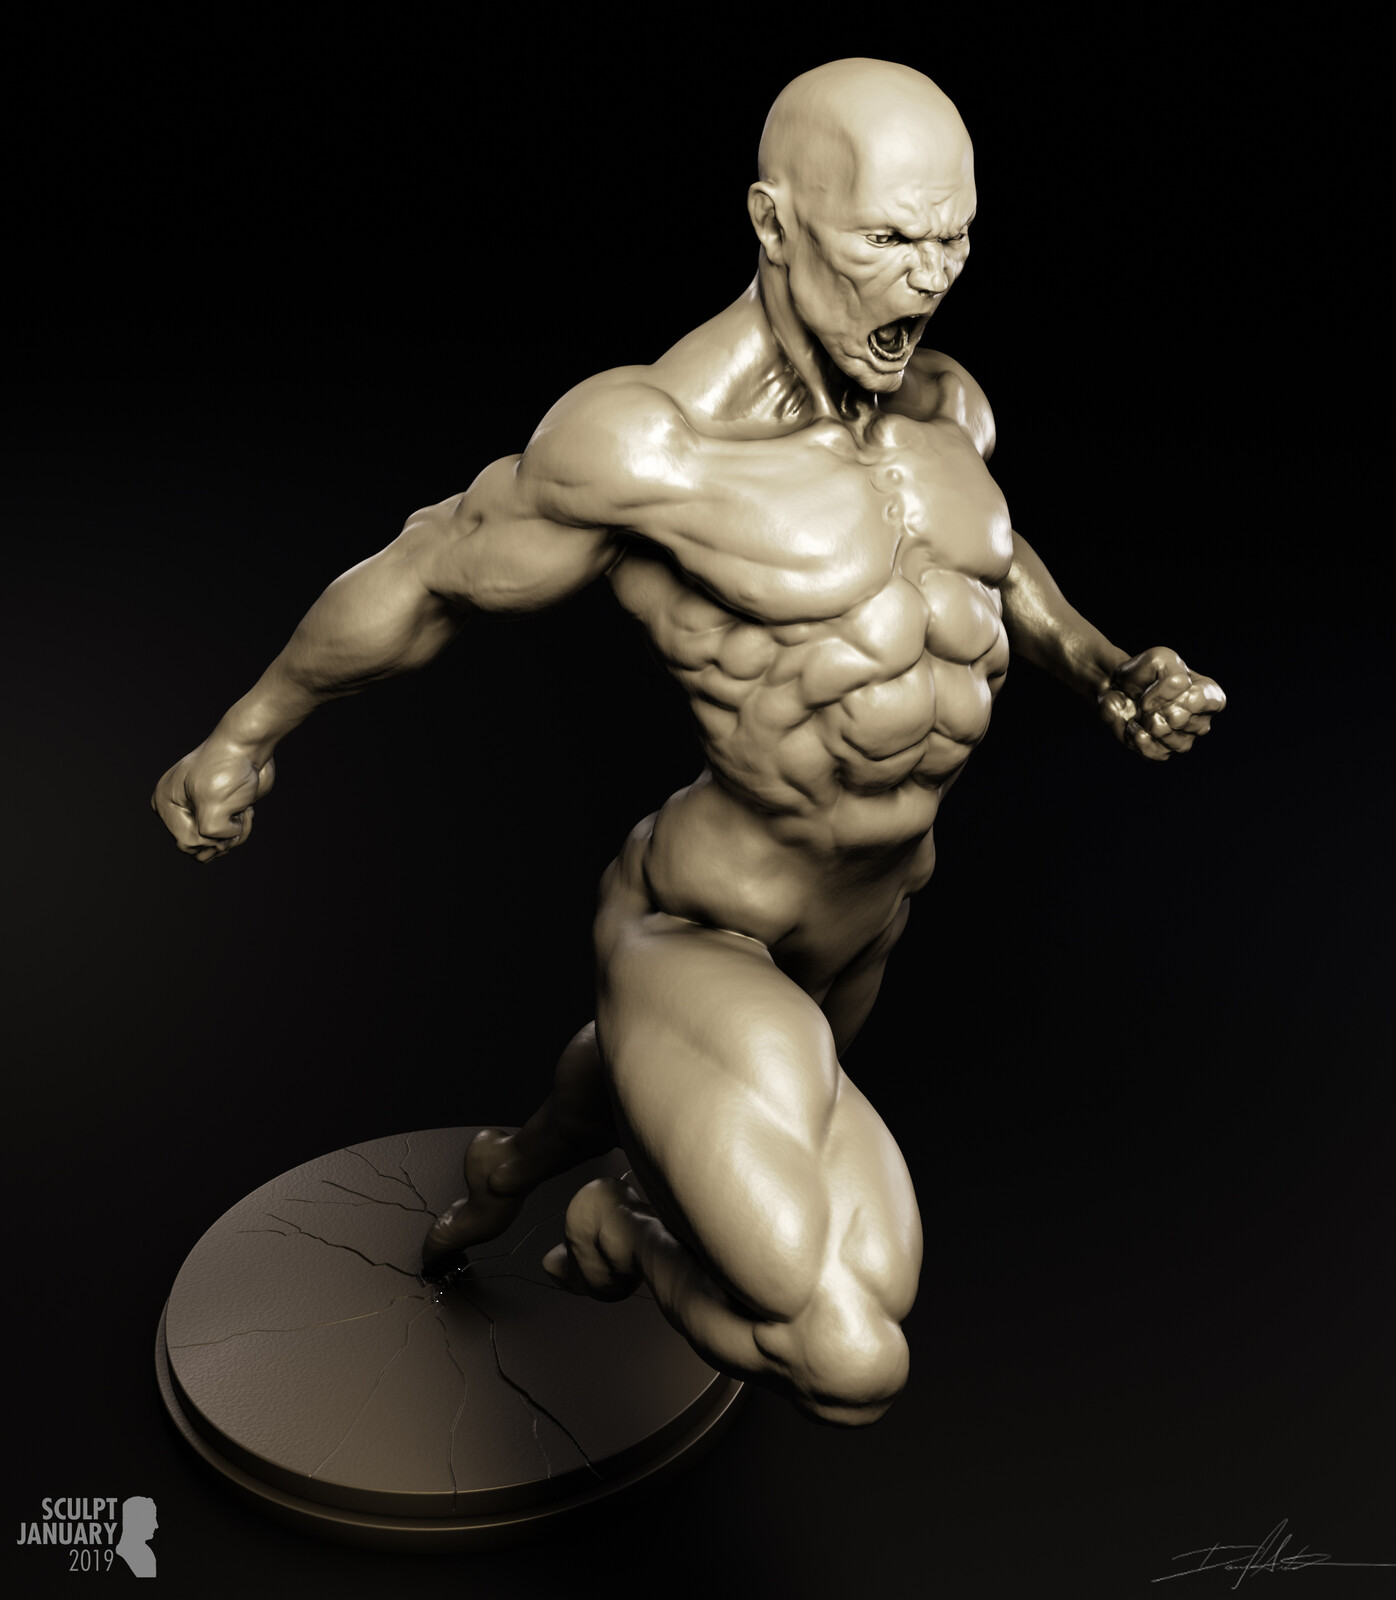 SCULPT JANUARY Day 31 - Extreme Expression (body)